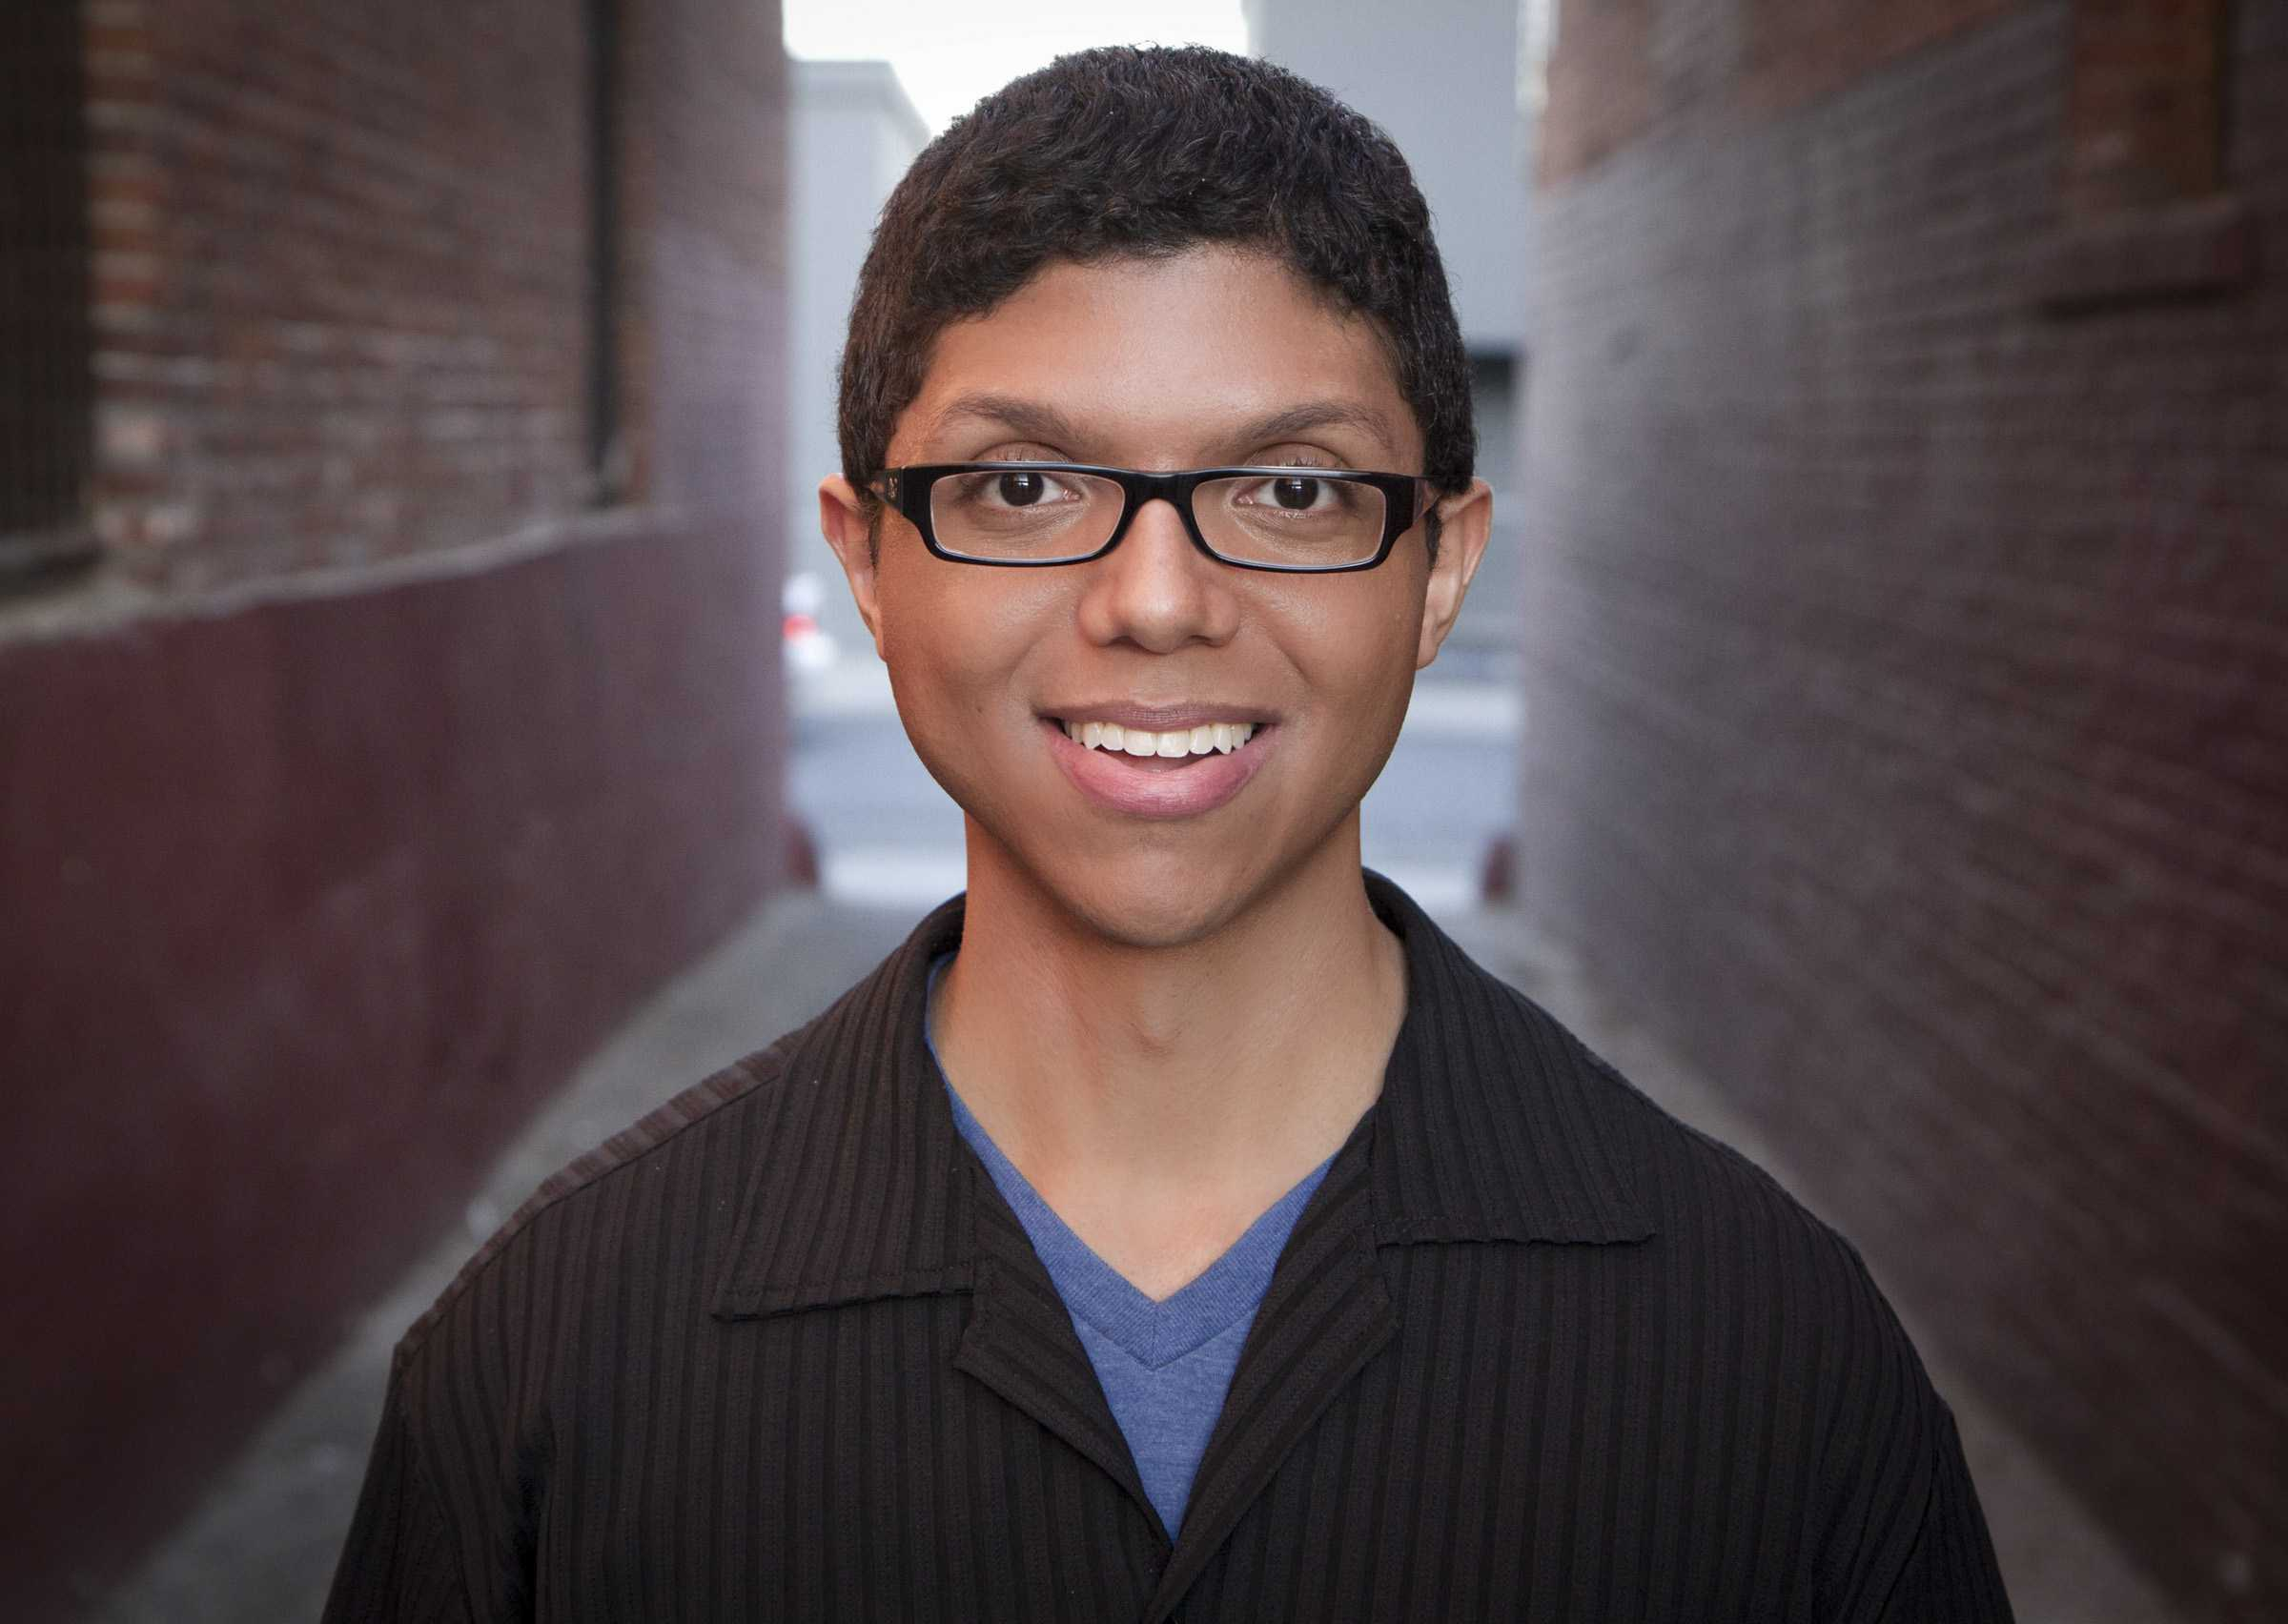 Tay Zonday-0803 Final Tedshot by Tedshots.com 2400px@80